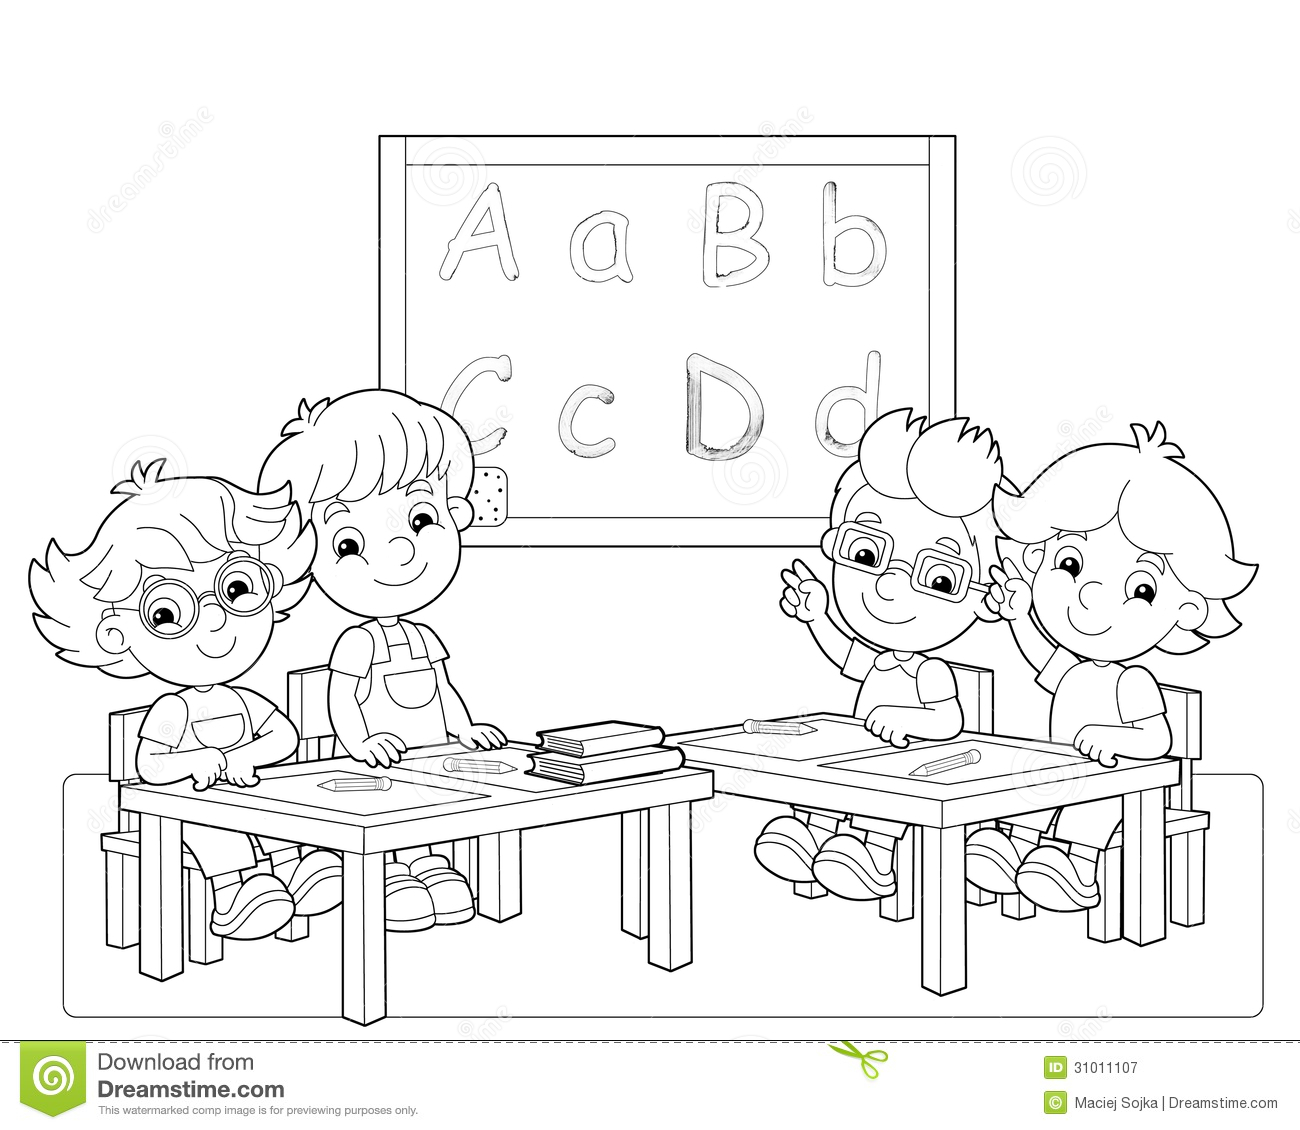 the page with exercises for kids coloring book illustration - Coloring Pictures Of Children